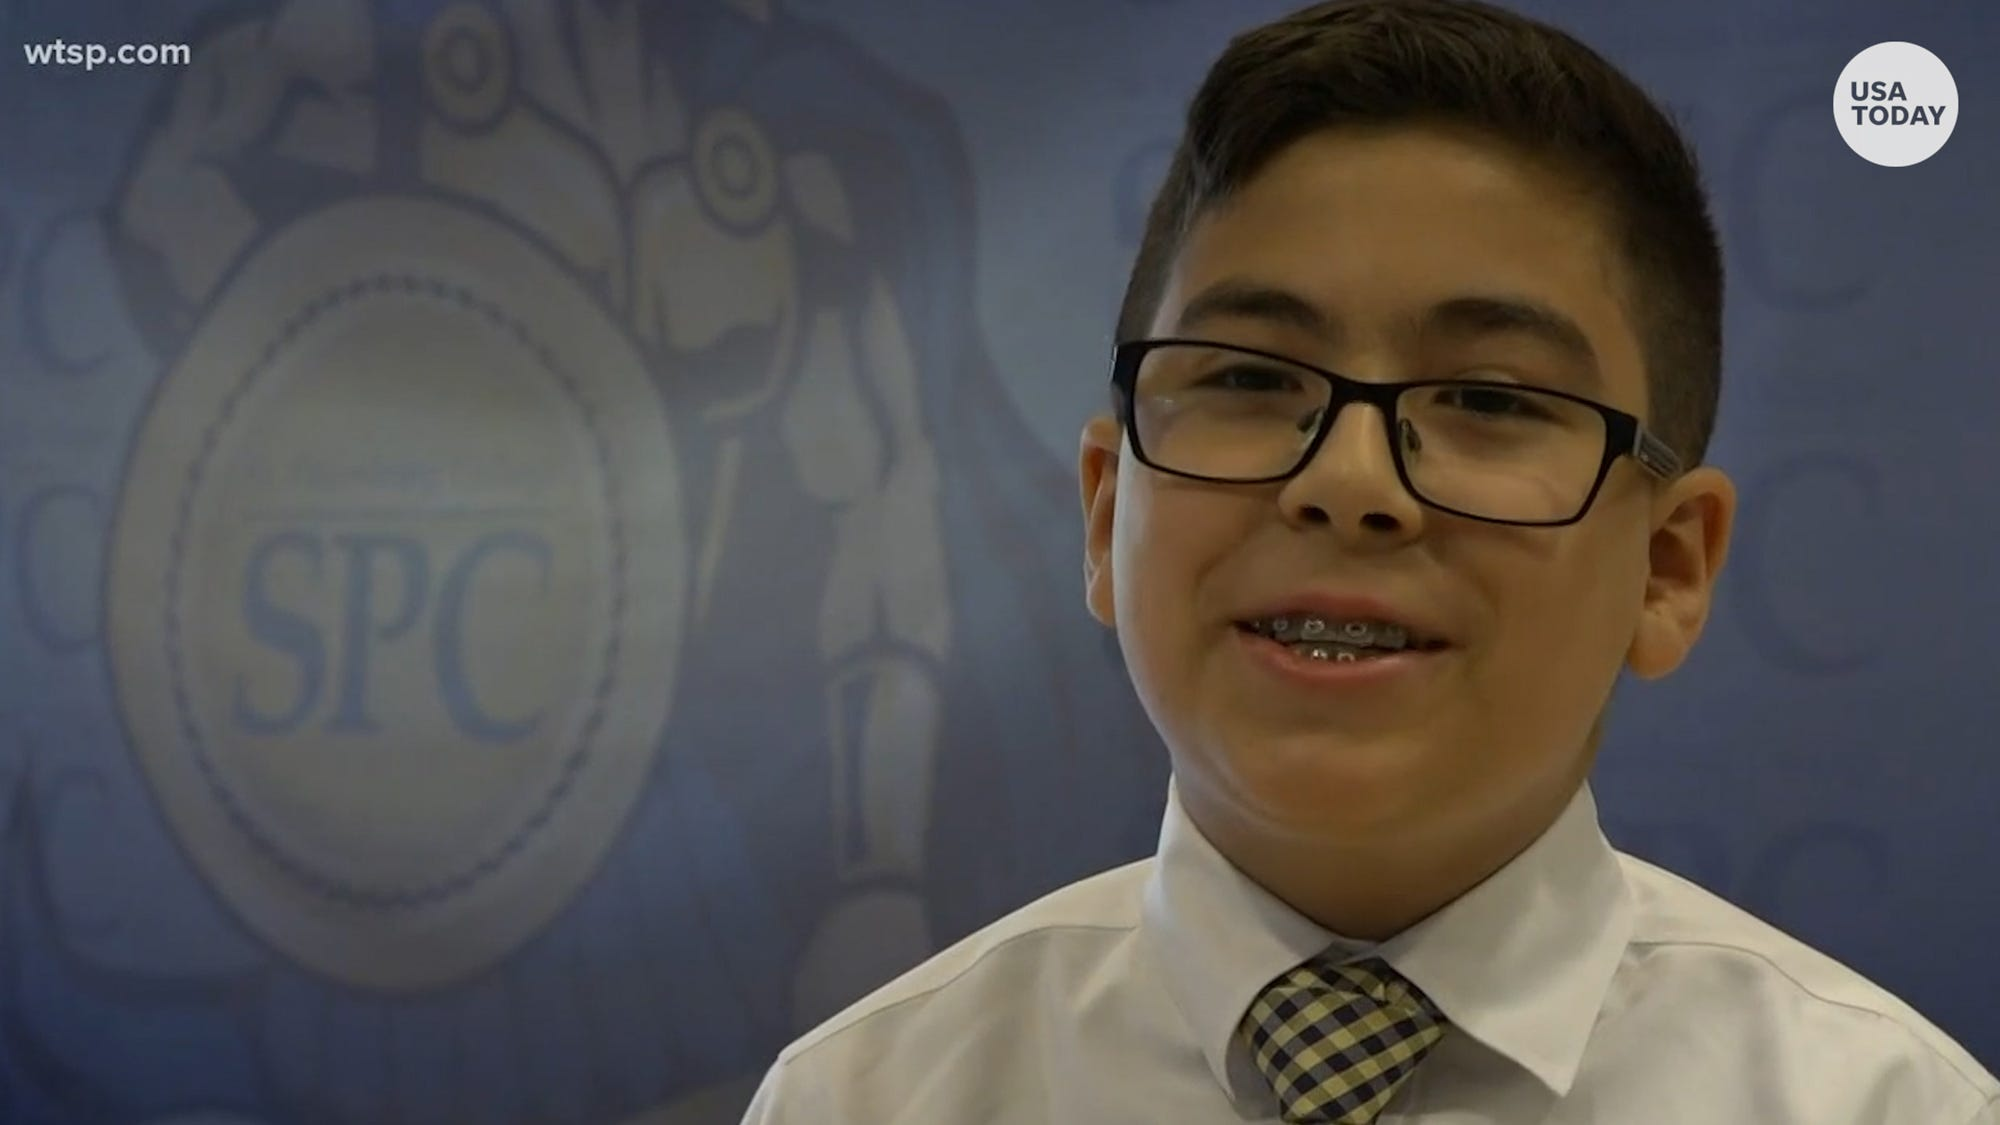 Boy, 11, graduates from college and still plans to continue education